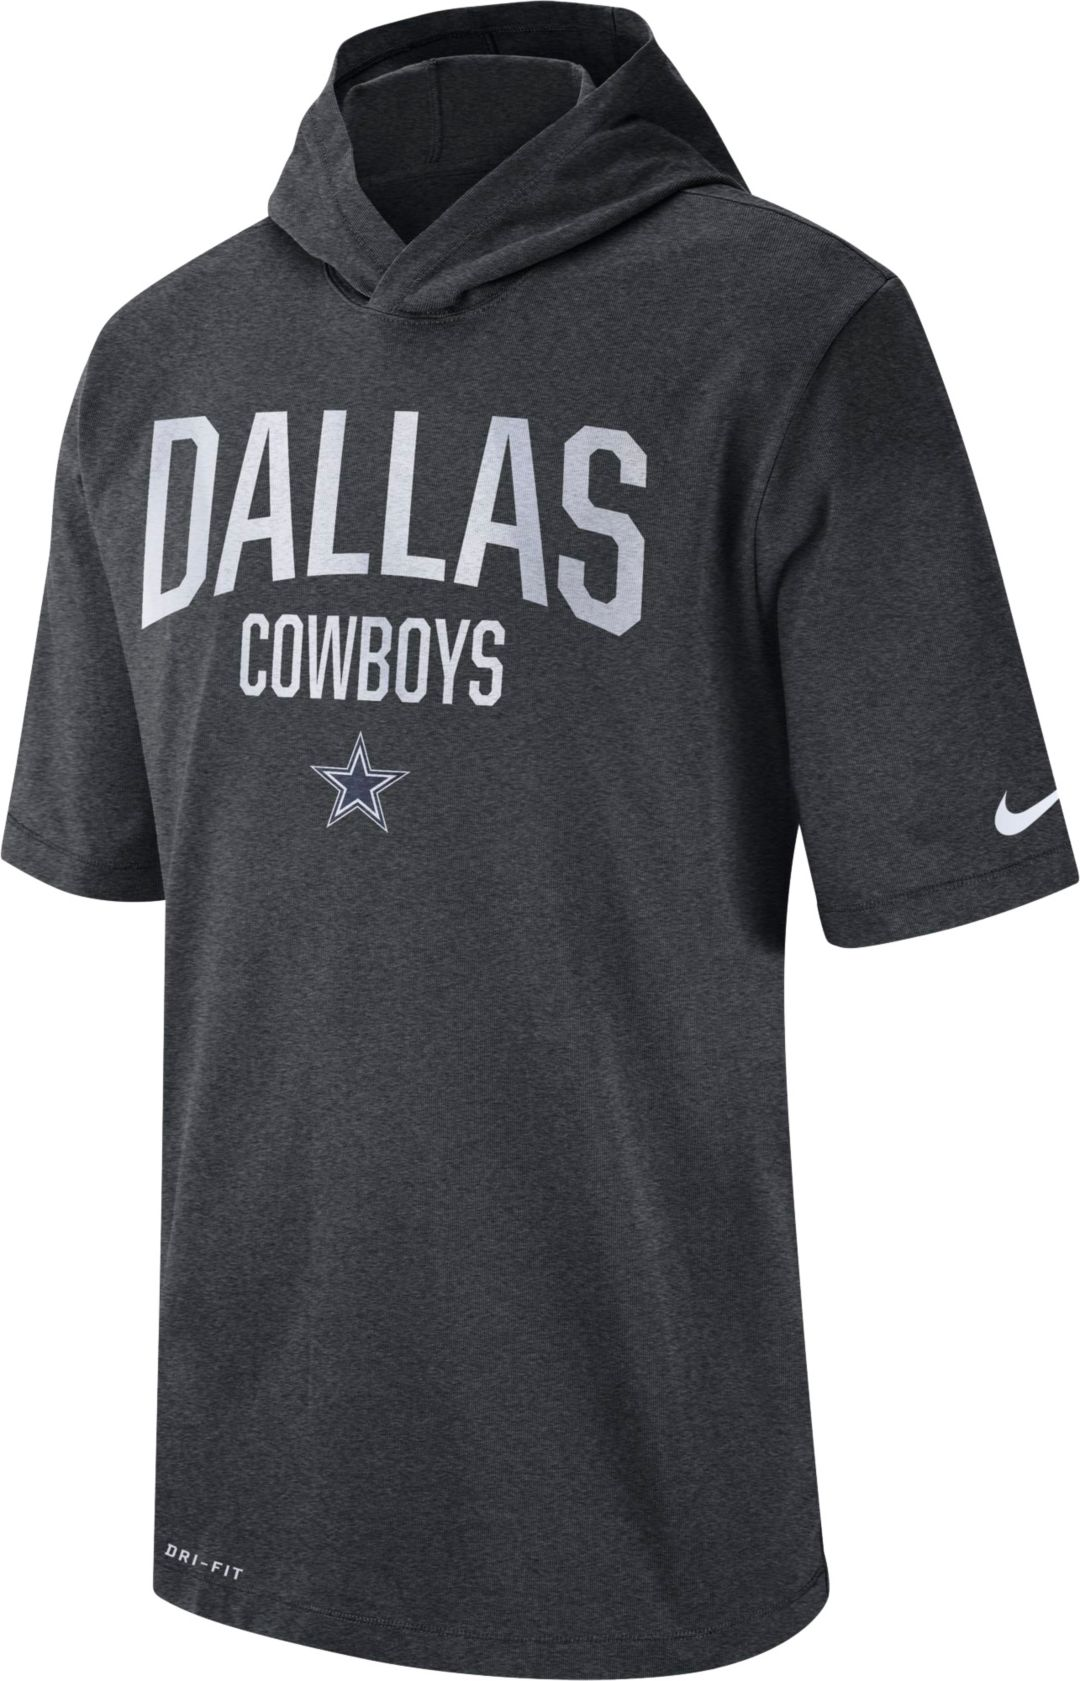 info for 35a59 1c1eb Nike Men's Dallas Cowboys Sideline Charcoal Short-Sleeve Hoodie T-Shirt